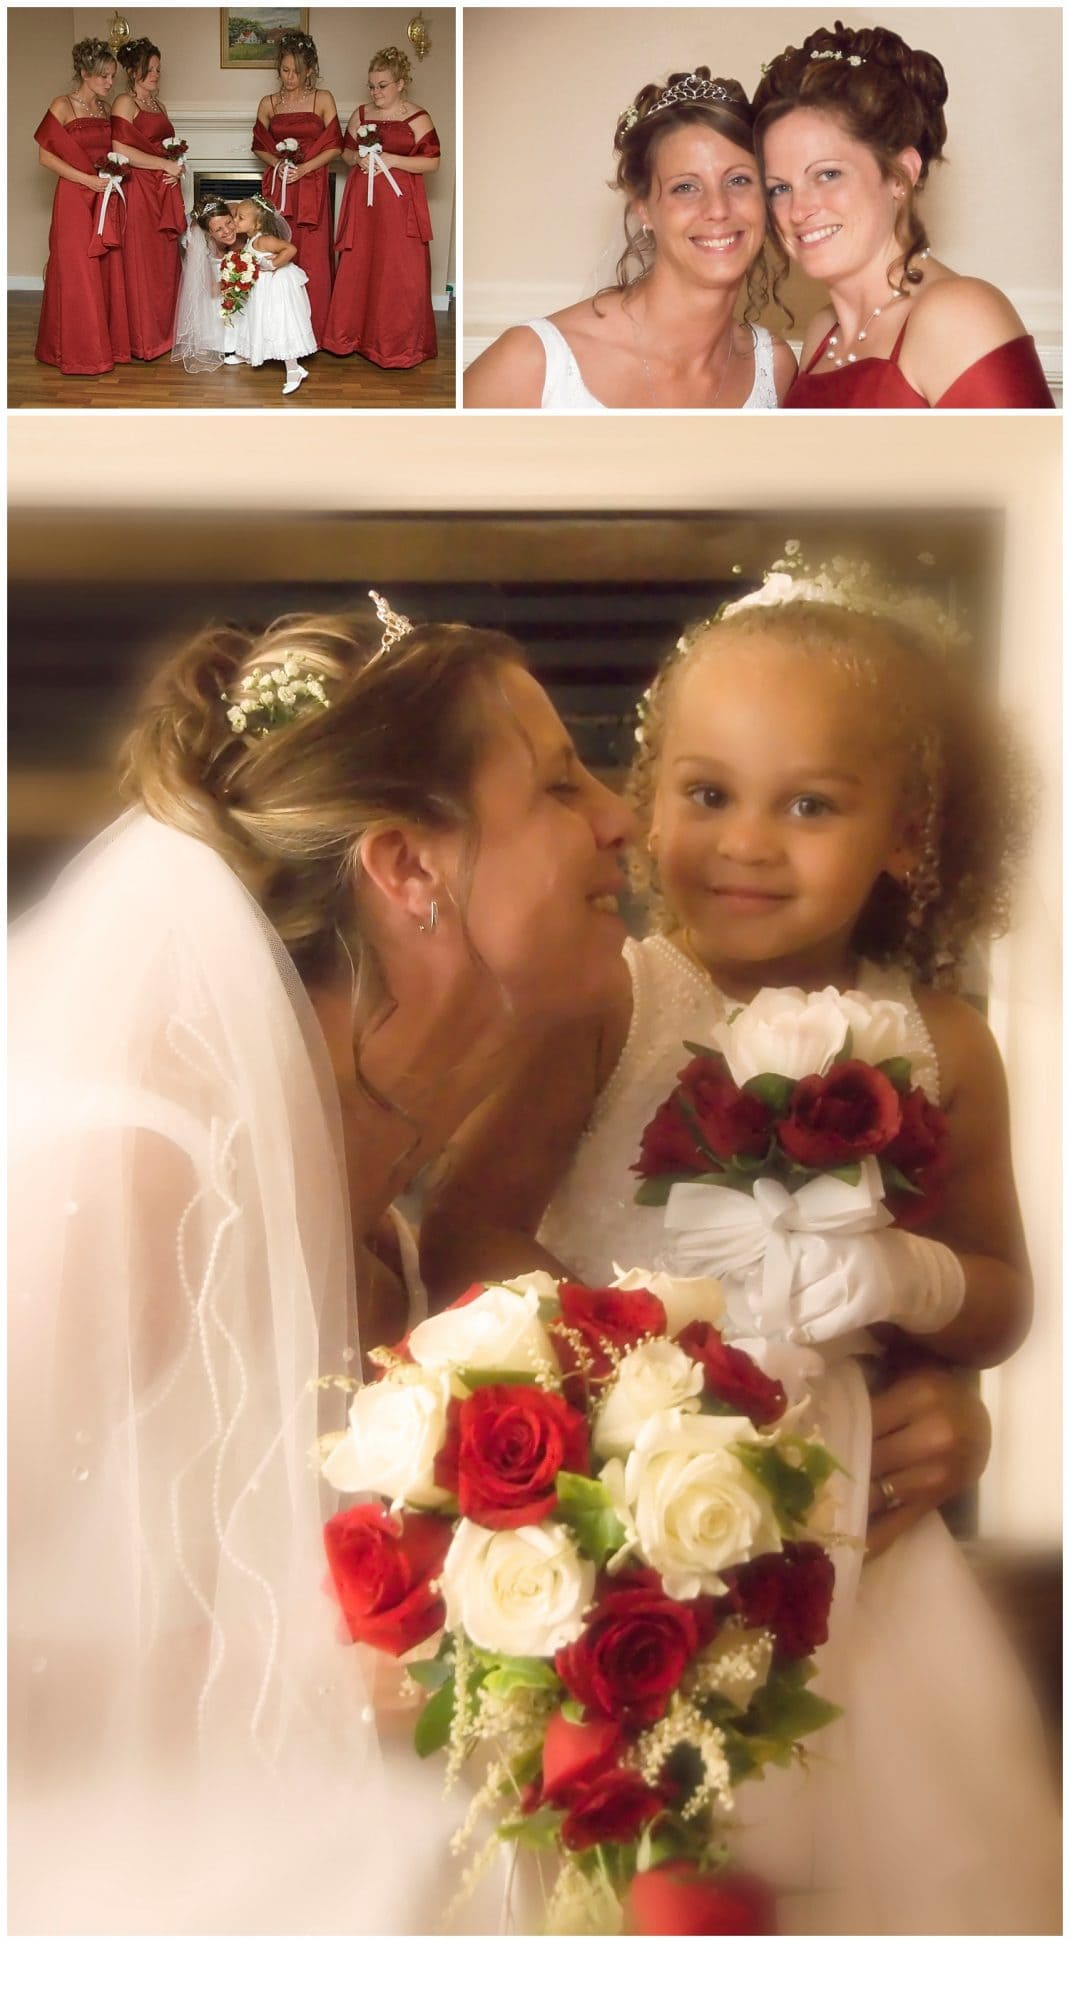 The flower girl with the bride during bridal prep.